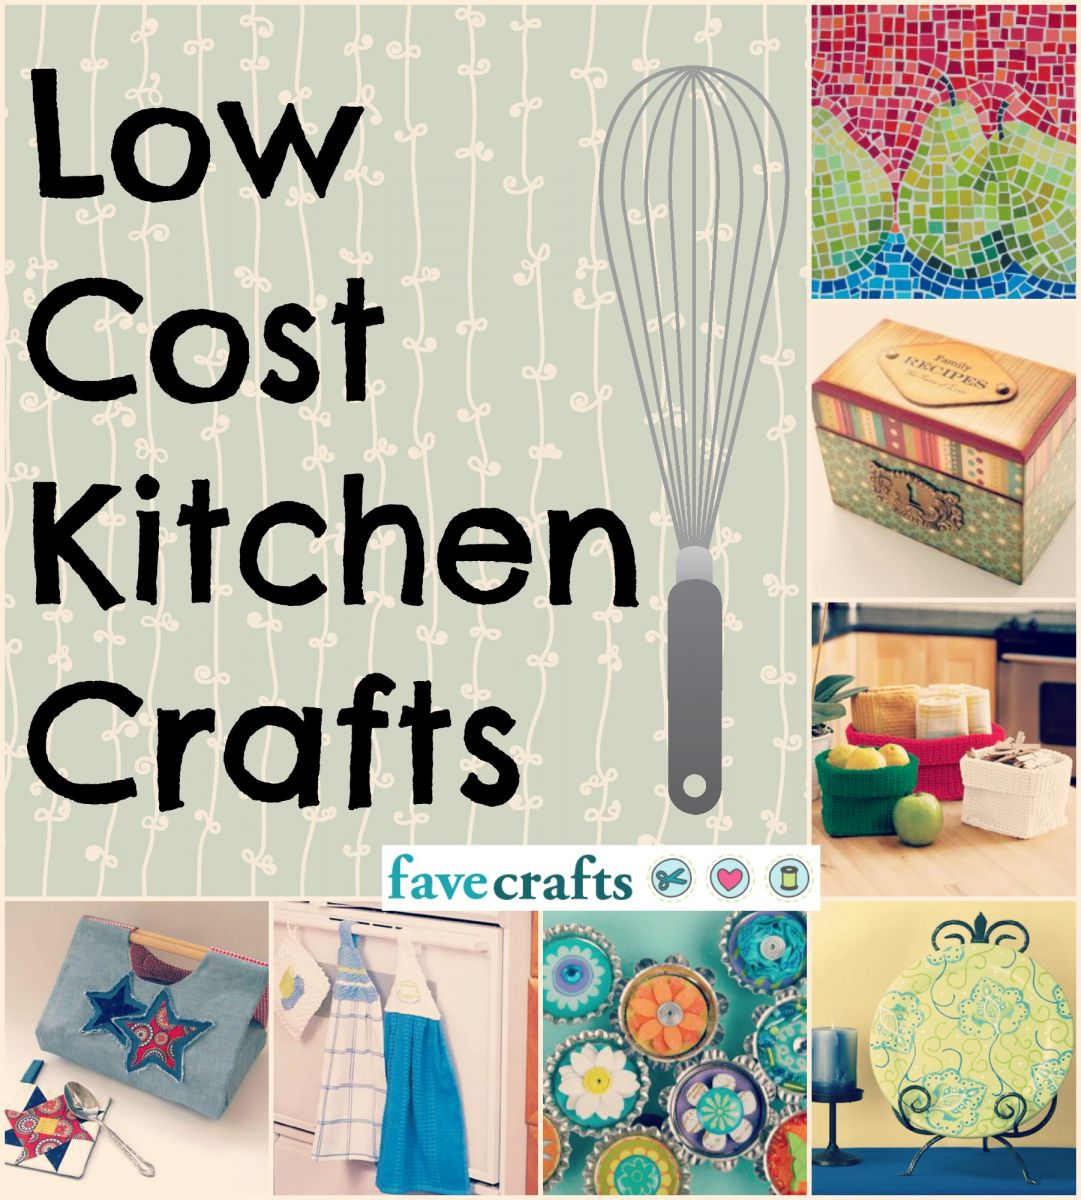 53 low cost kitchen crafts